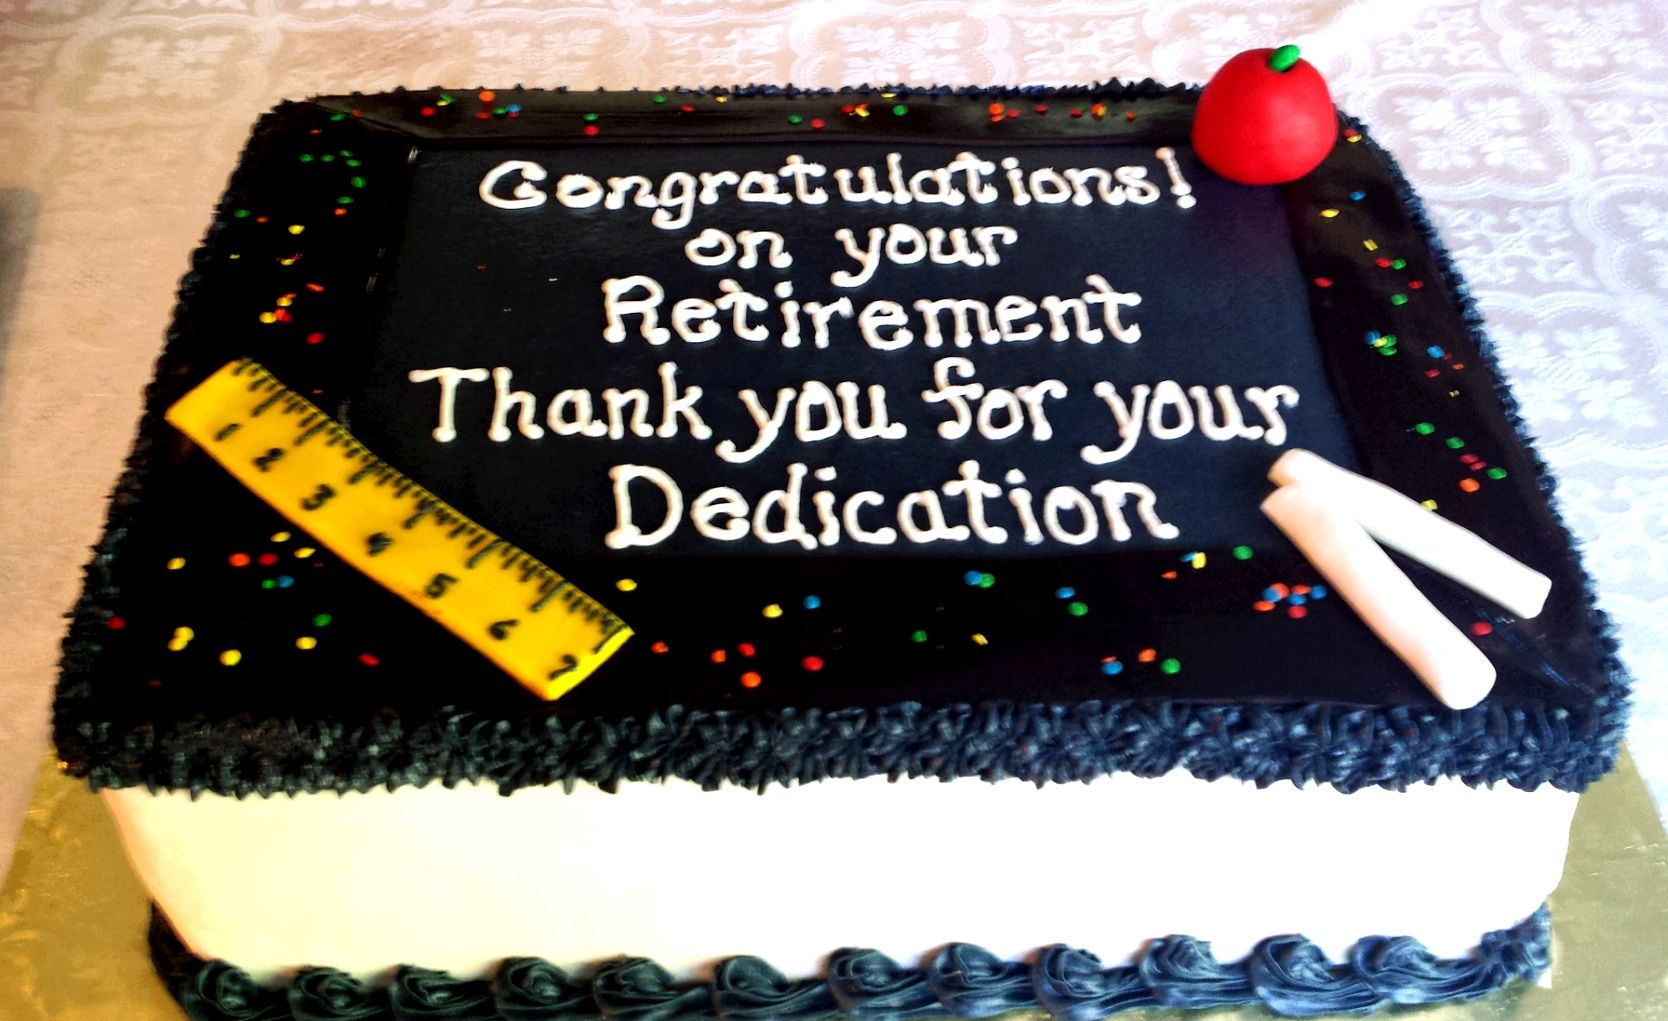 Some Incredible Things To Write On A Cake While Throwing A Retirement Party